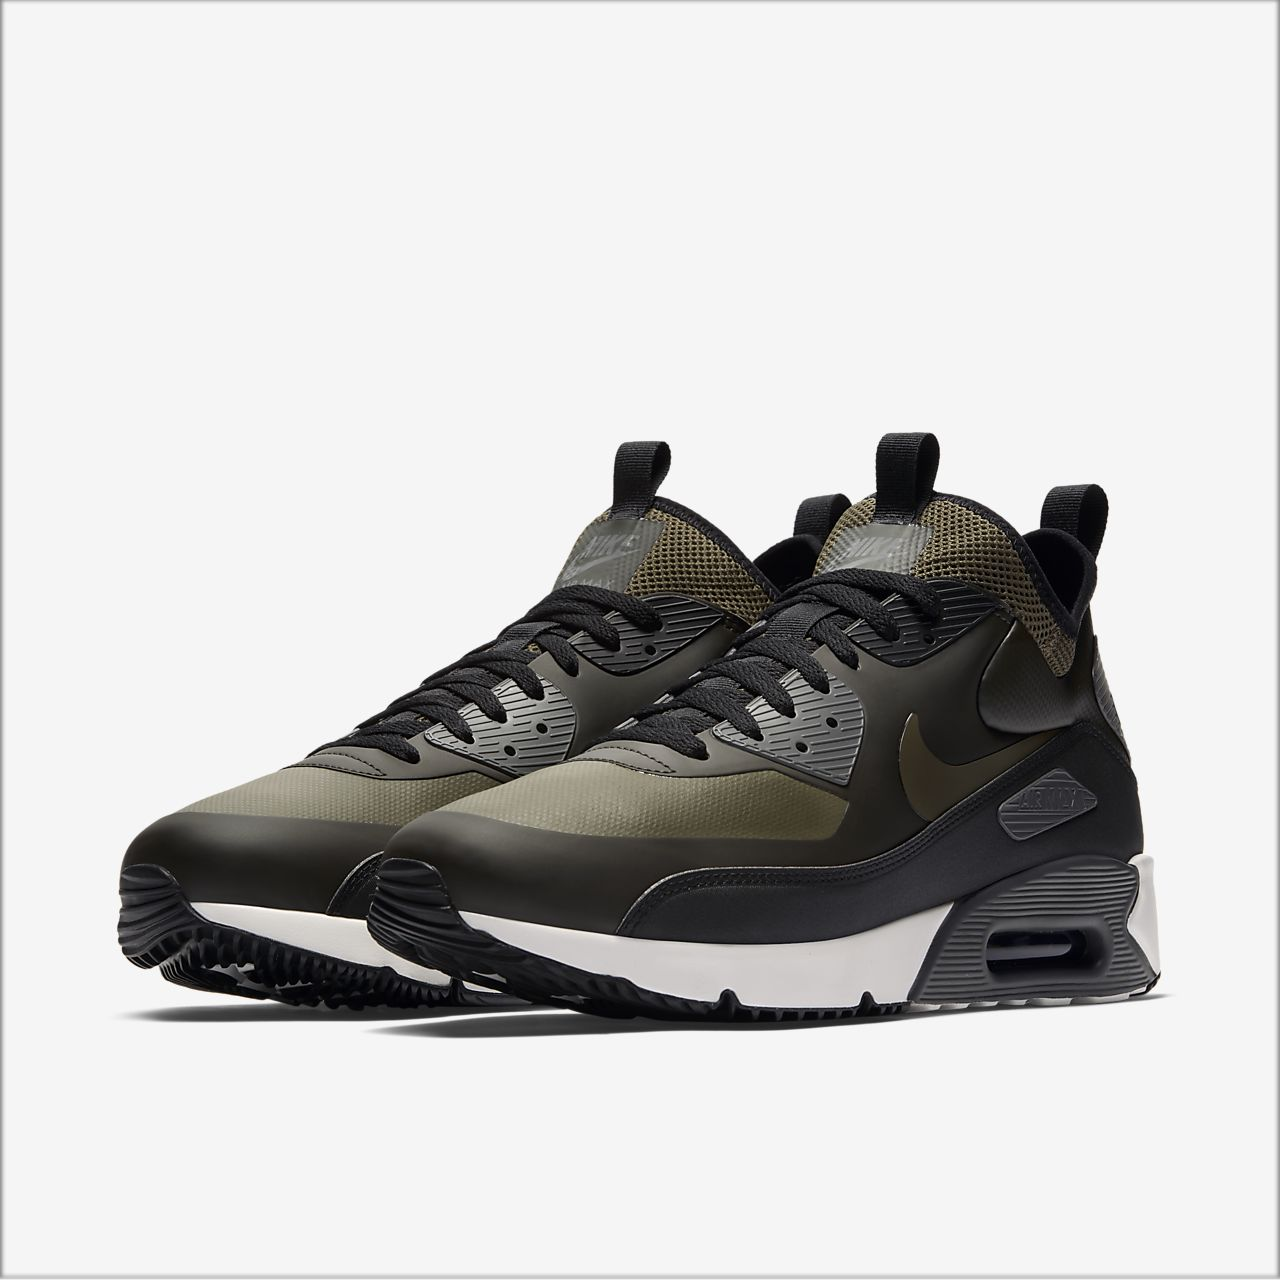 nike air max 90 winter in grey suede handbag